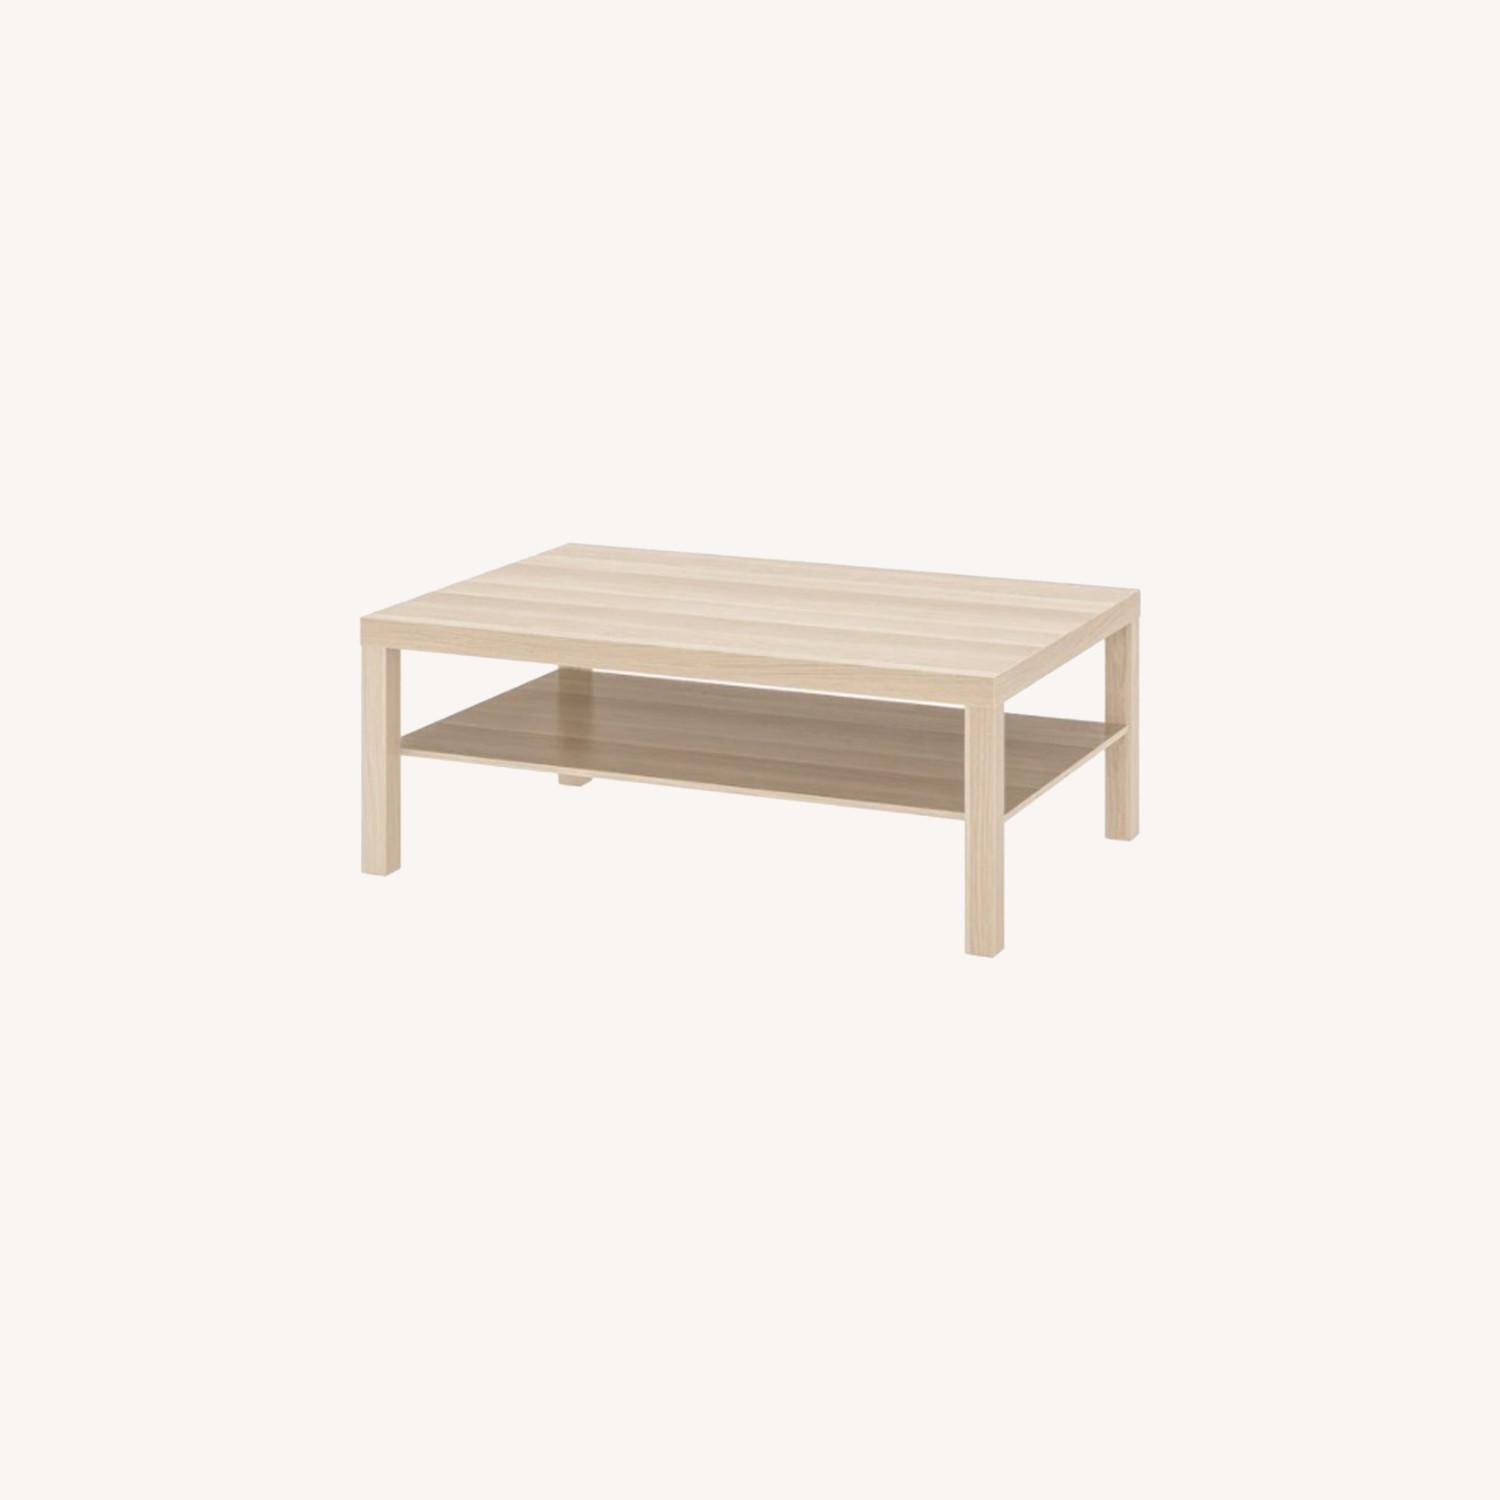 IKEA White Stained Oak Effect Lack Coffee Table - image-0